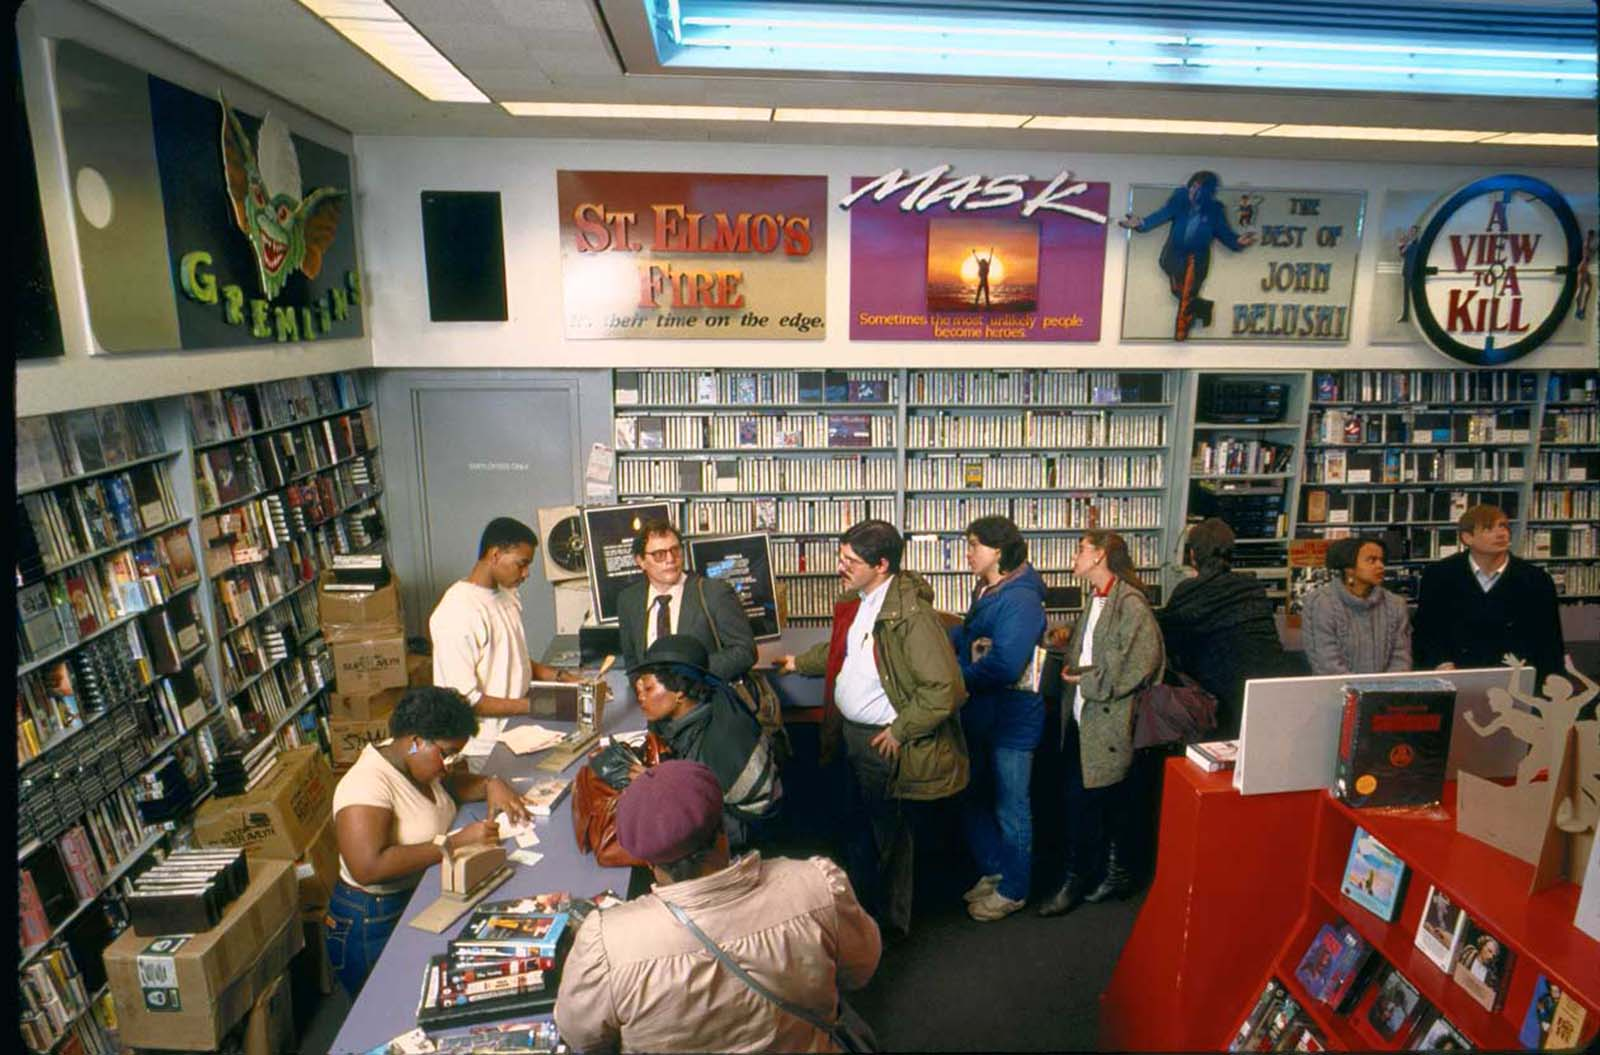 Inside a Tower Video store. 1986.